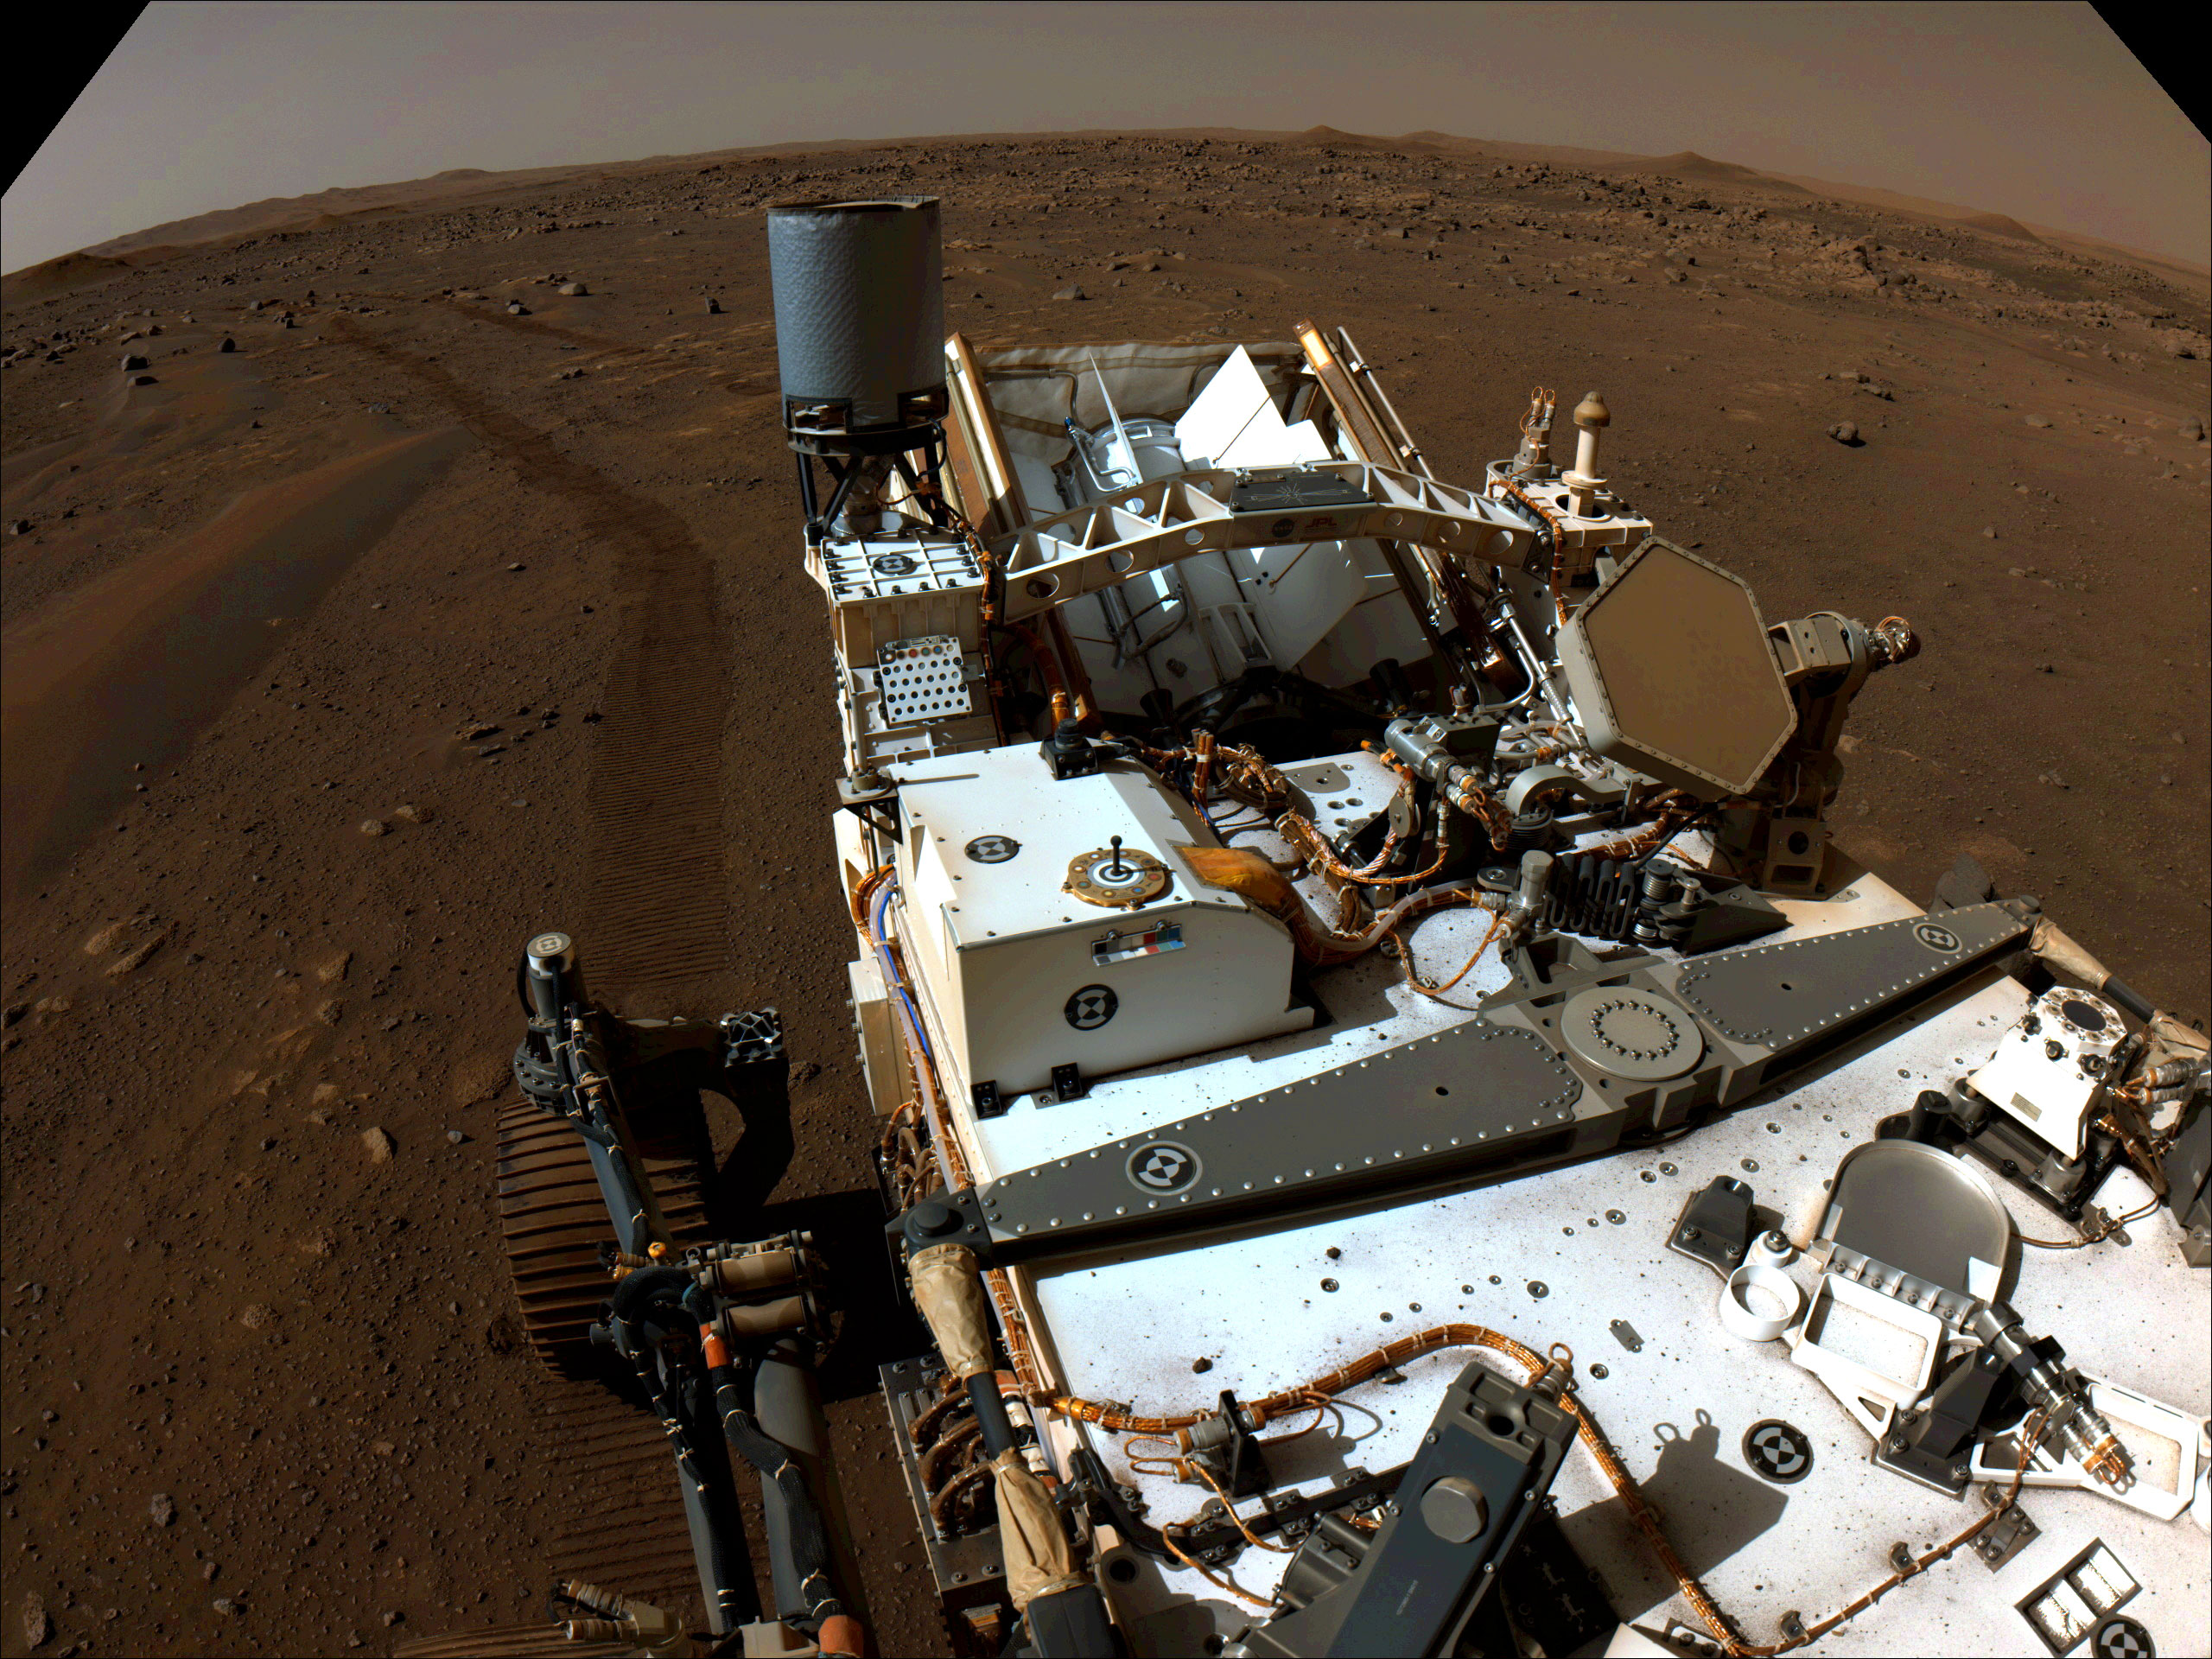 The Perseverance rover can be seen in this image looking back. The rover's tracks are imprinted into the rocky, sandy surface and hills are visible in the background.